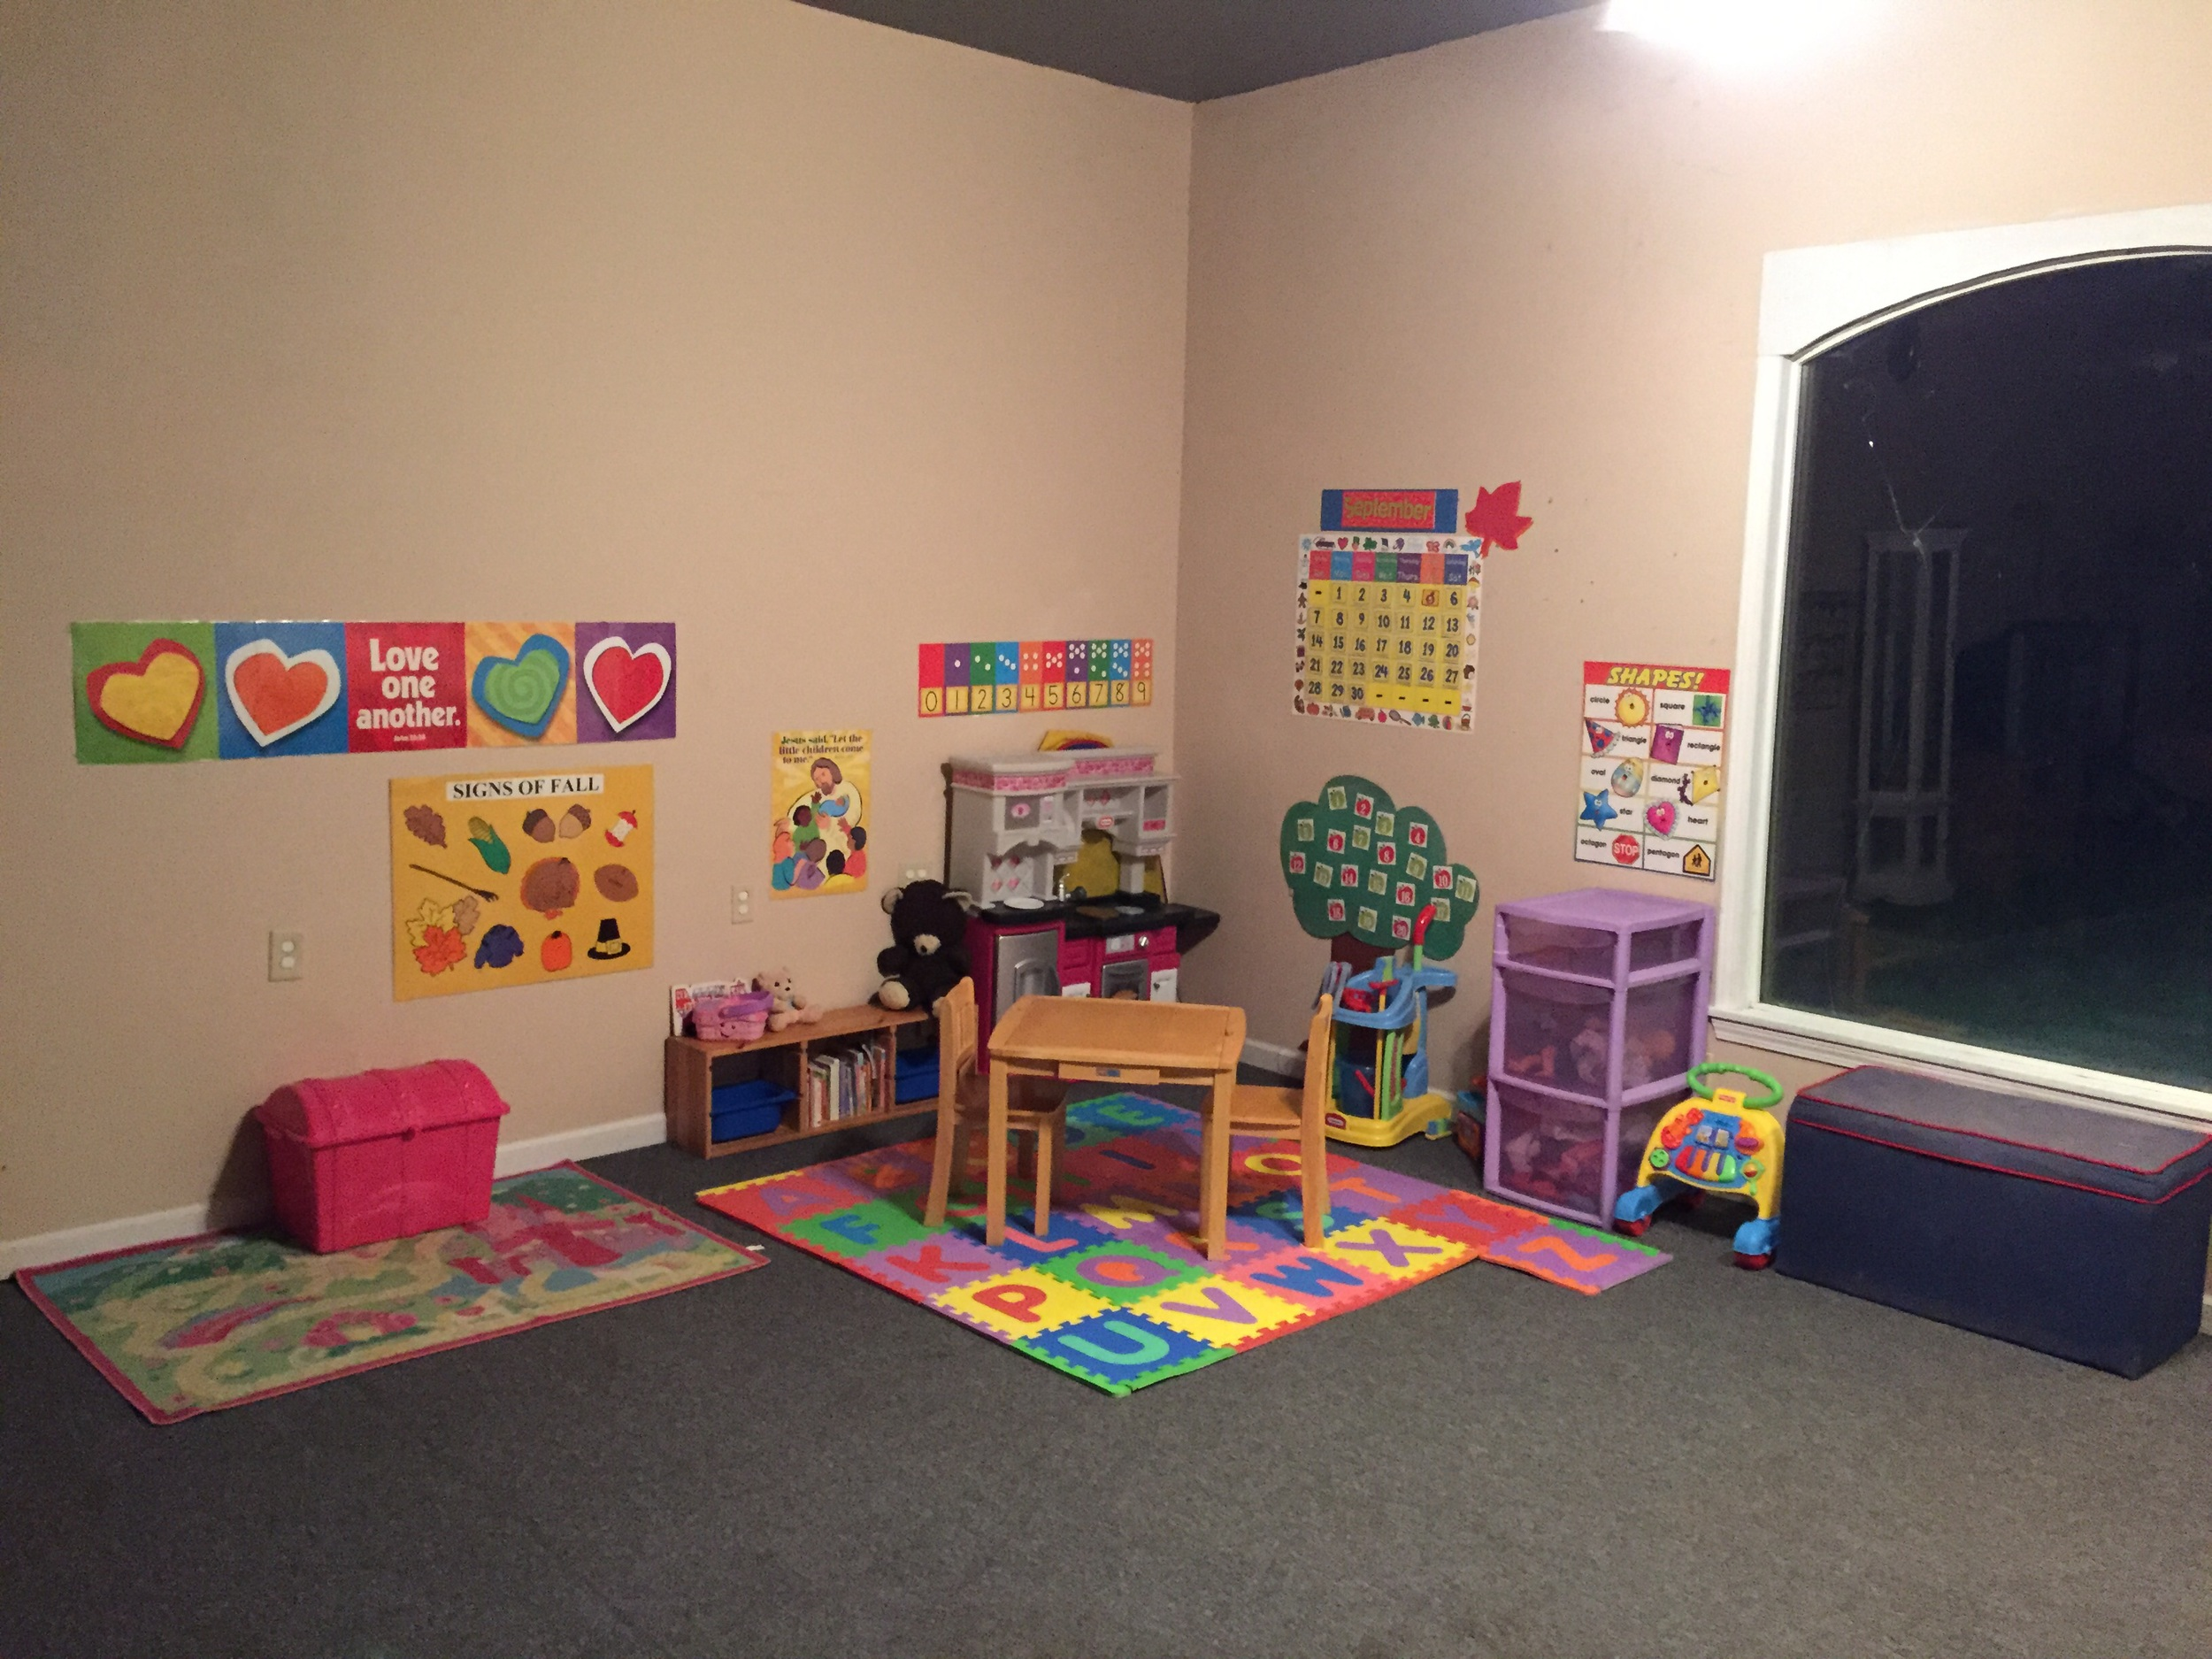 The Preschool Area of our schoolhouse.